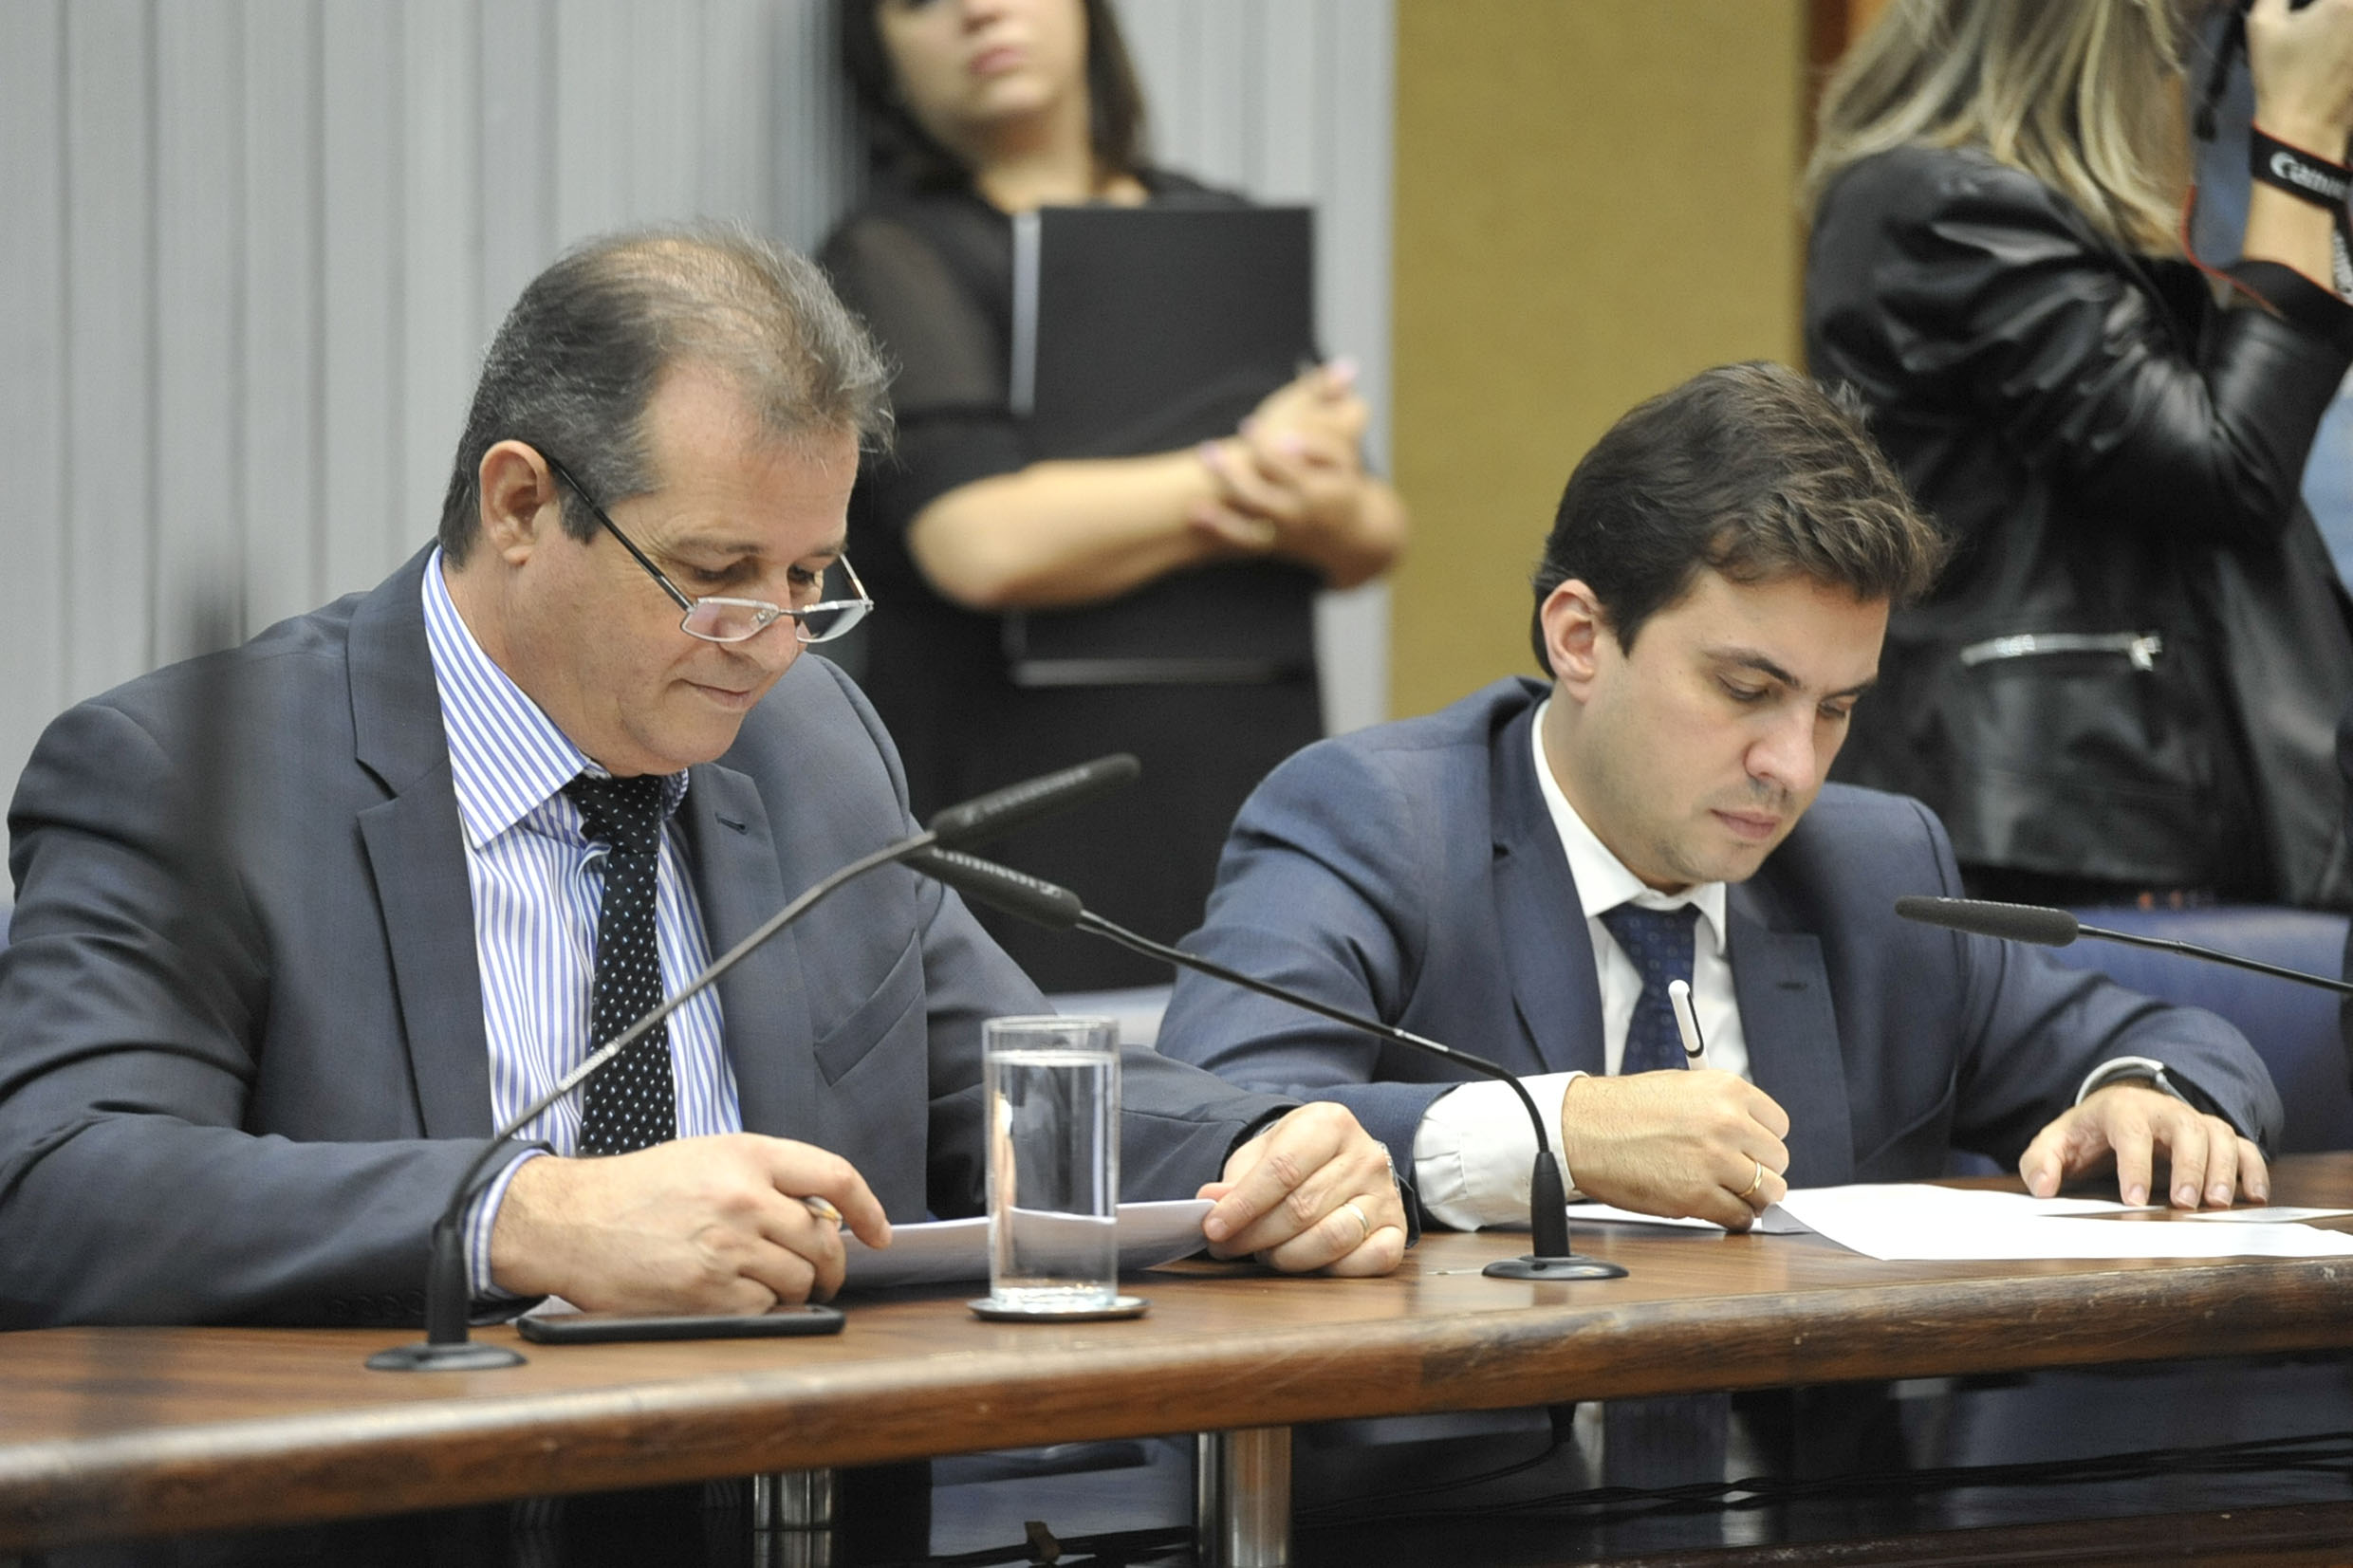 Parlamentares na comissão<a style='float:right' href='https://www3.al.sp.gov.br/repositorio/noticia/N-05-2019/fg234547.jpg' target=_blank><img src='/_img/material-file-download-white.png' width='14px' alt='Clique para baixar a imagem'></a>